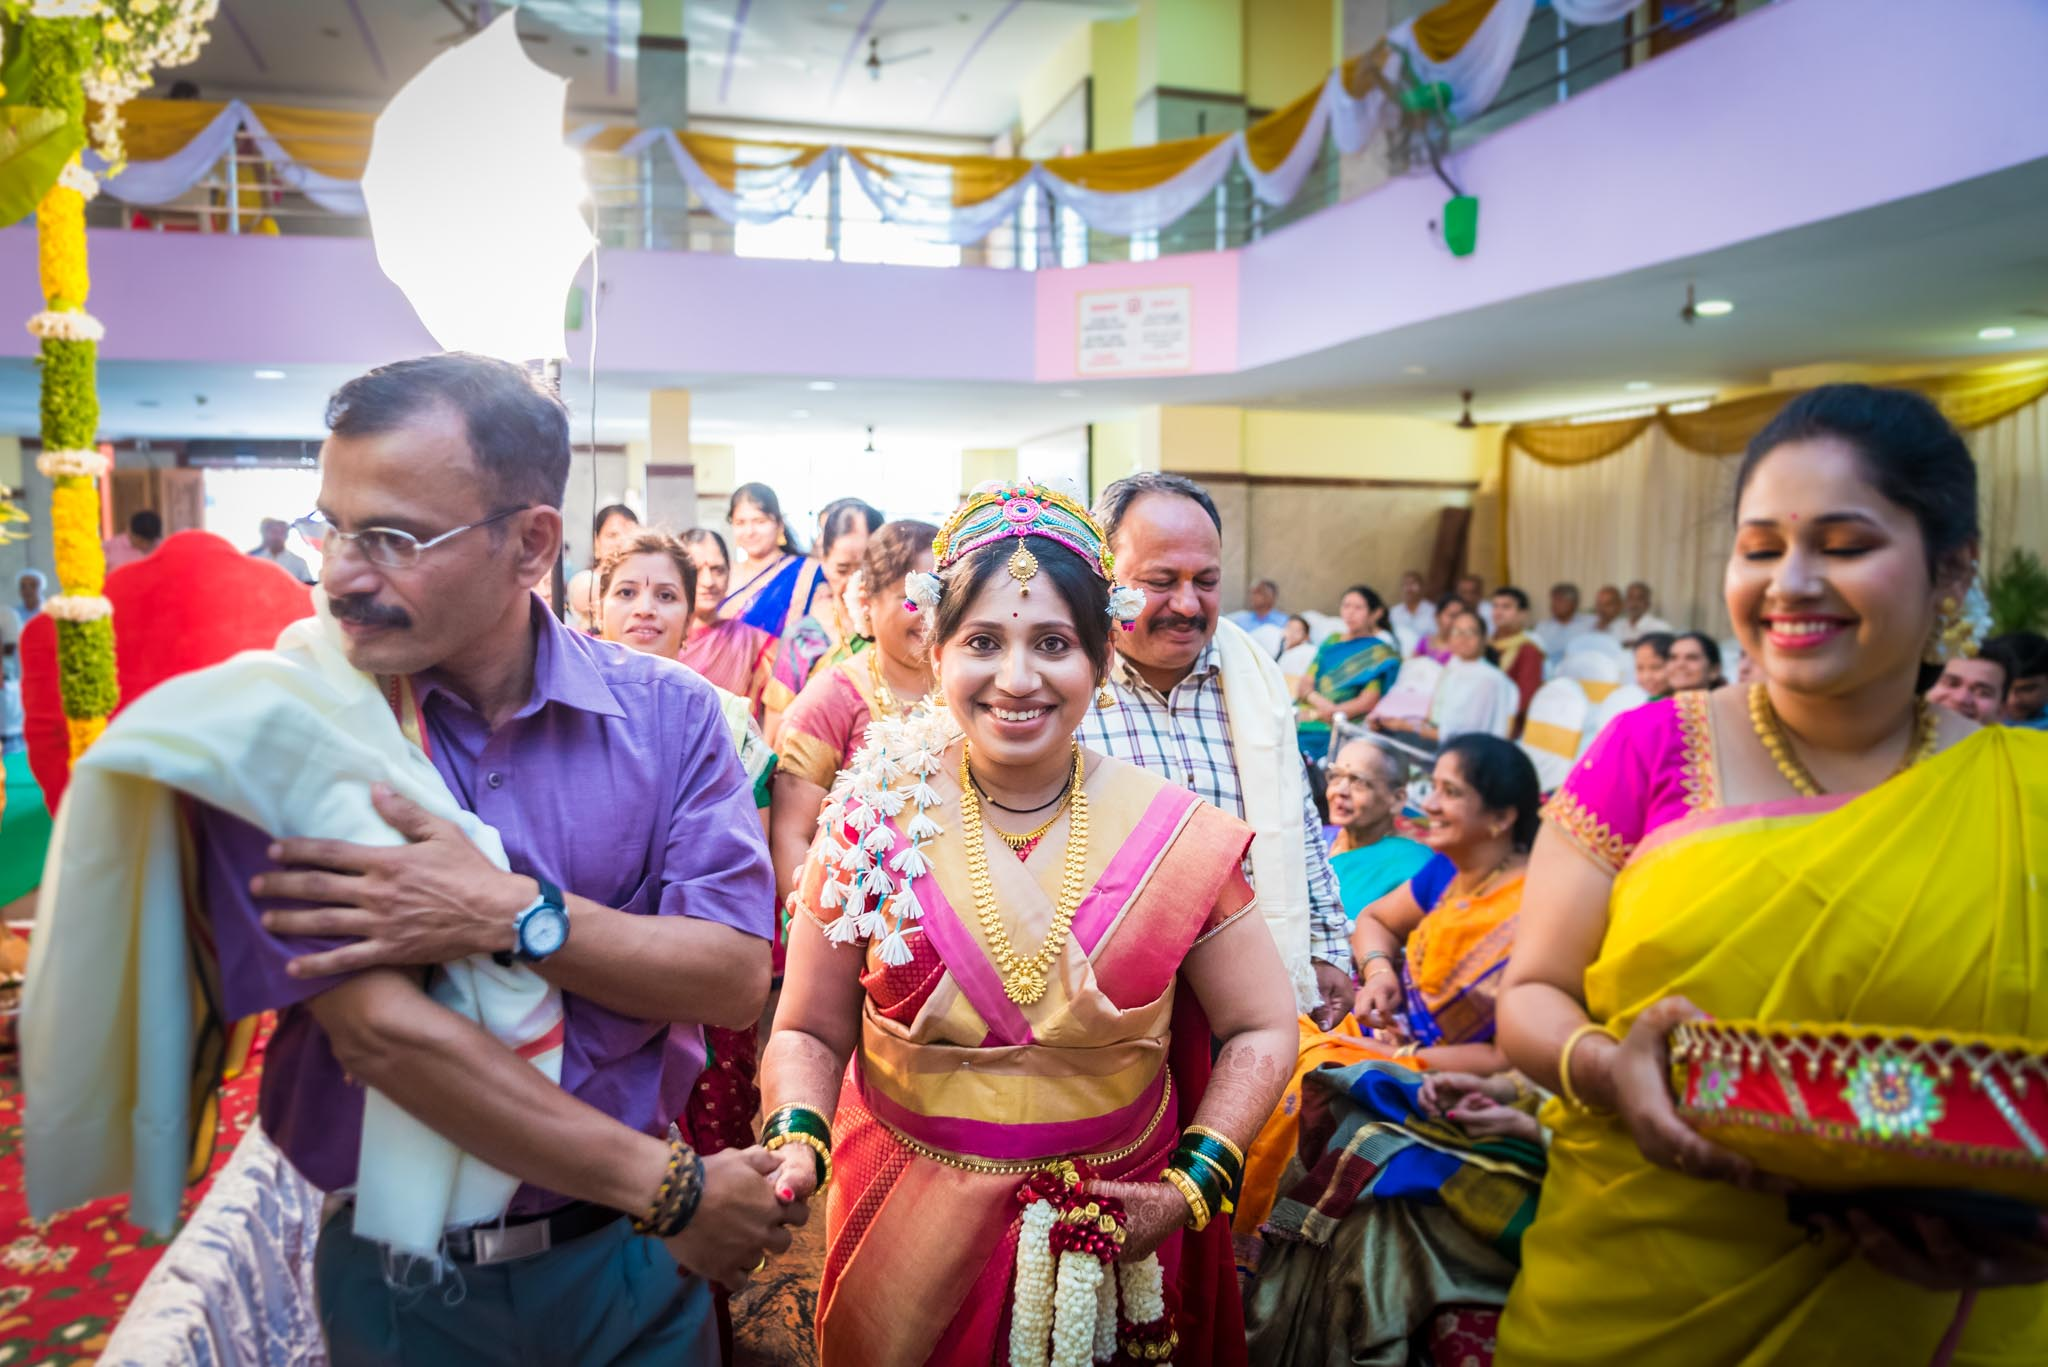 WhatKnot-Candid-Wedding-Photography-Mumbai-Bangalore-159